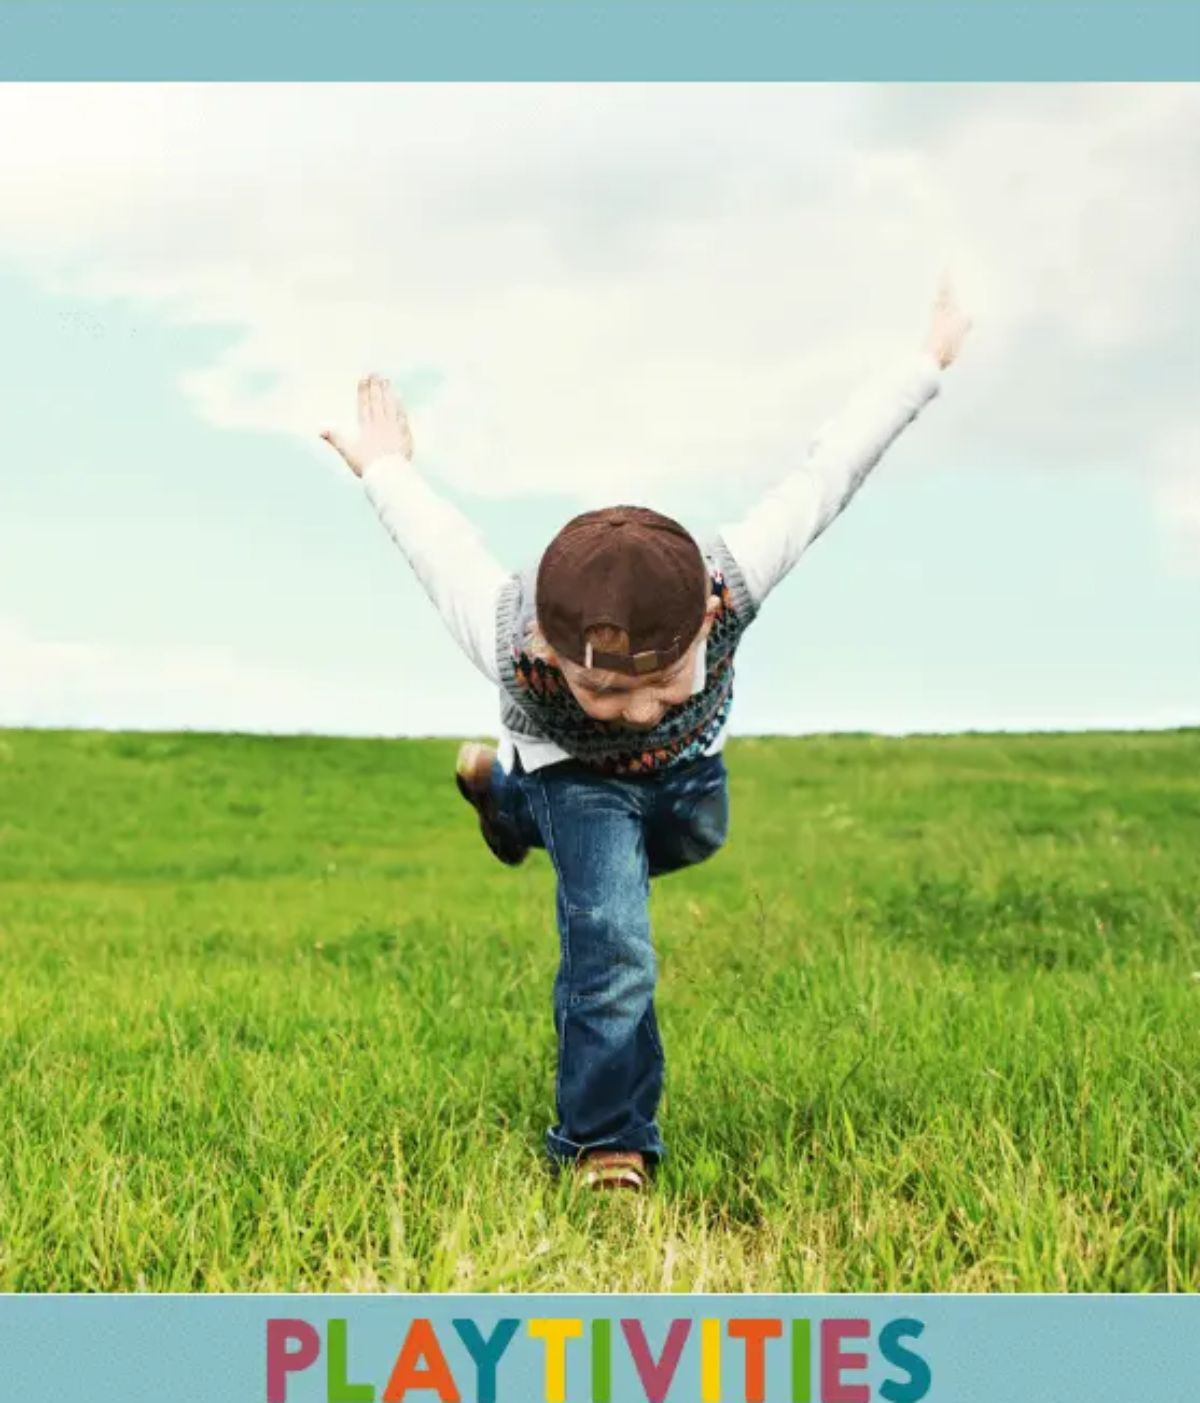 A boy stands in a field bent over with his hands in the air.